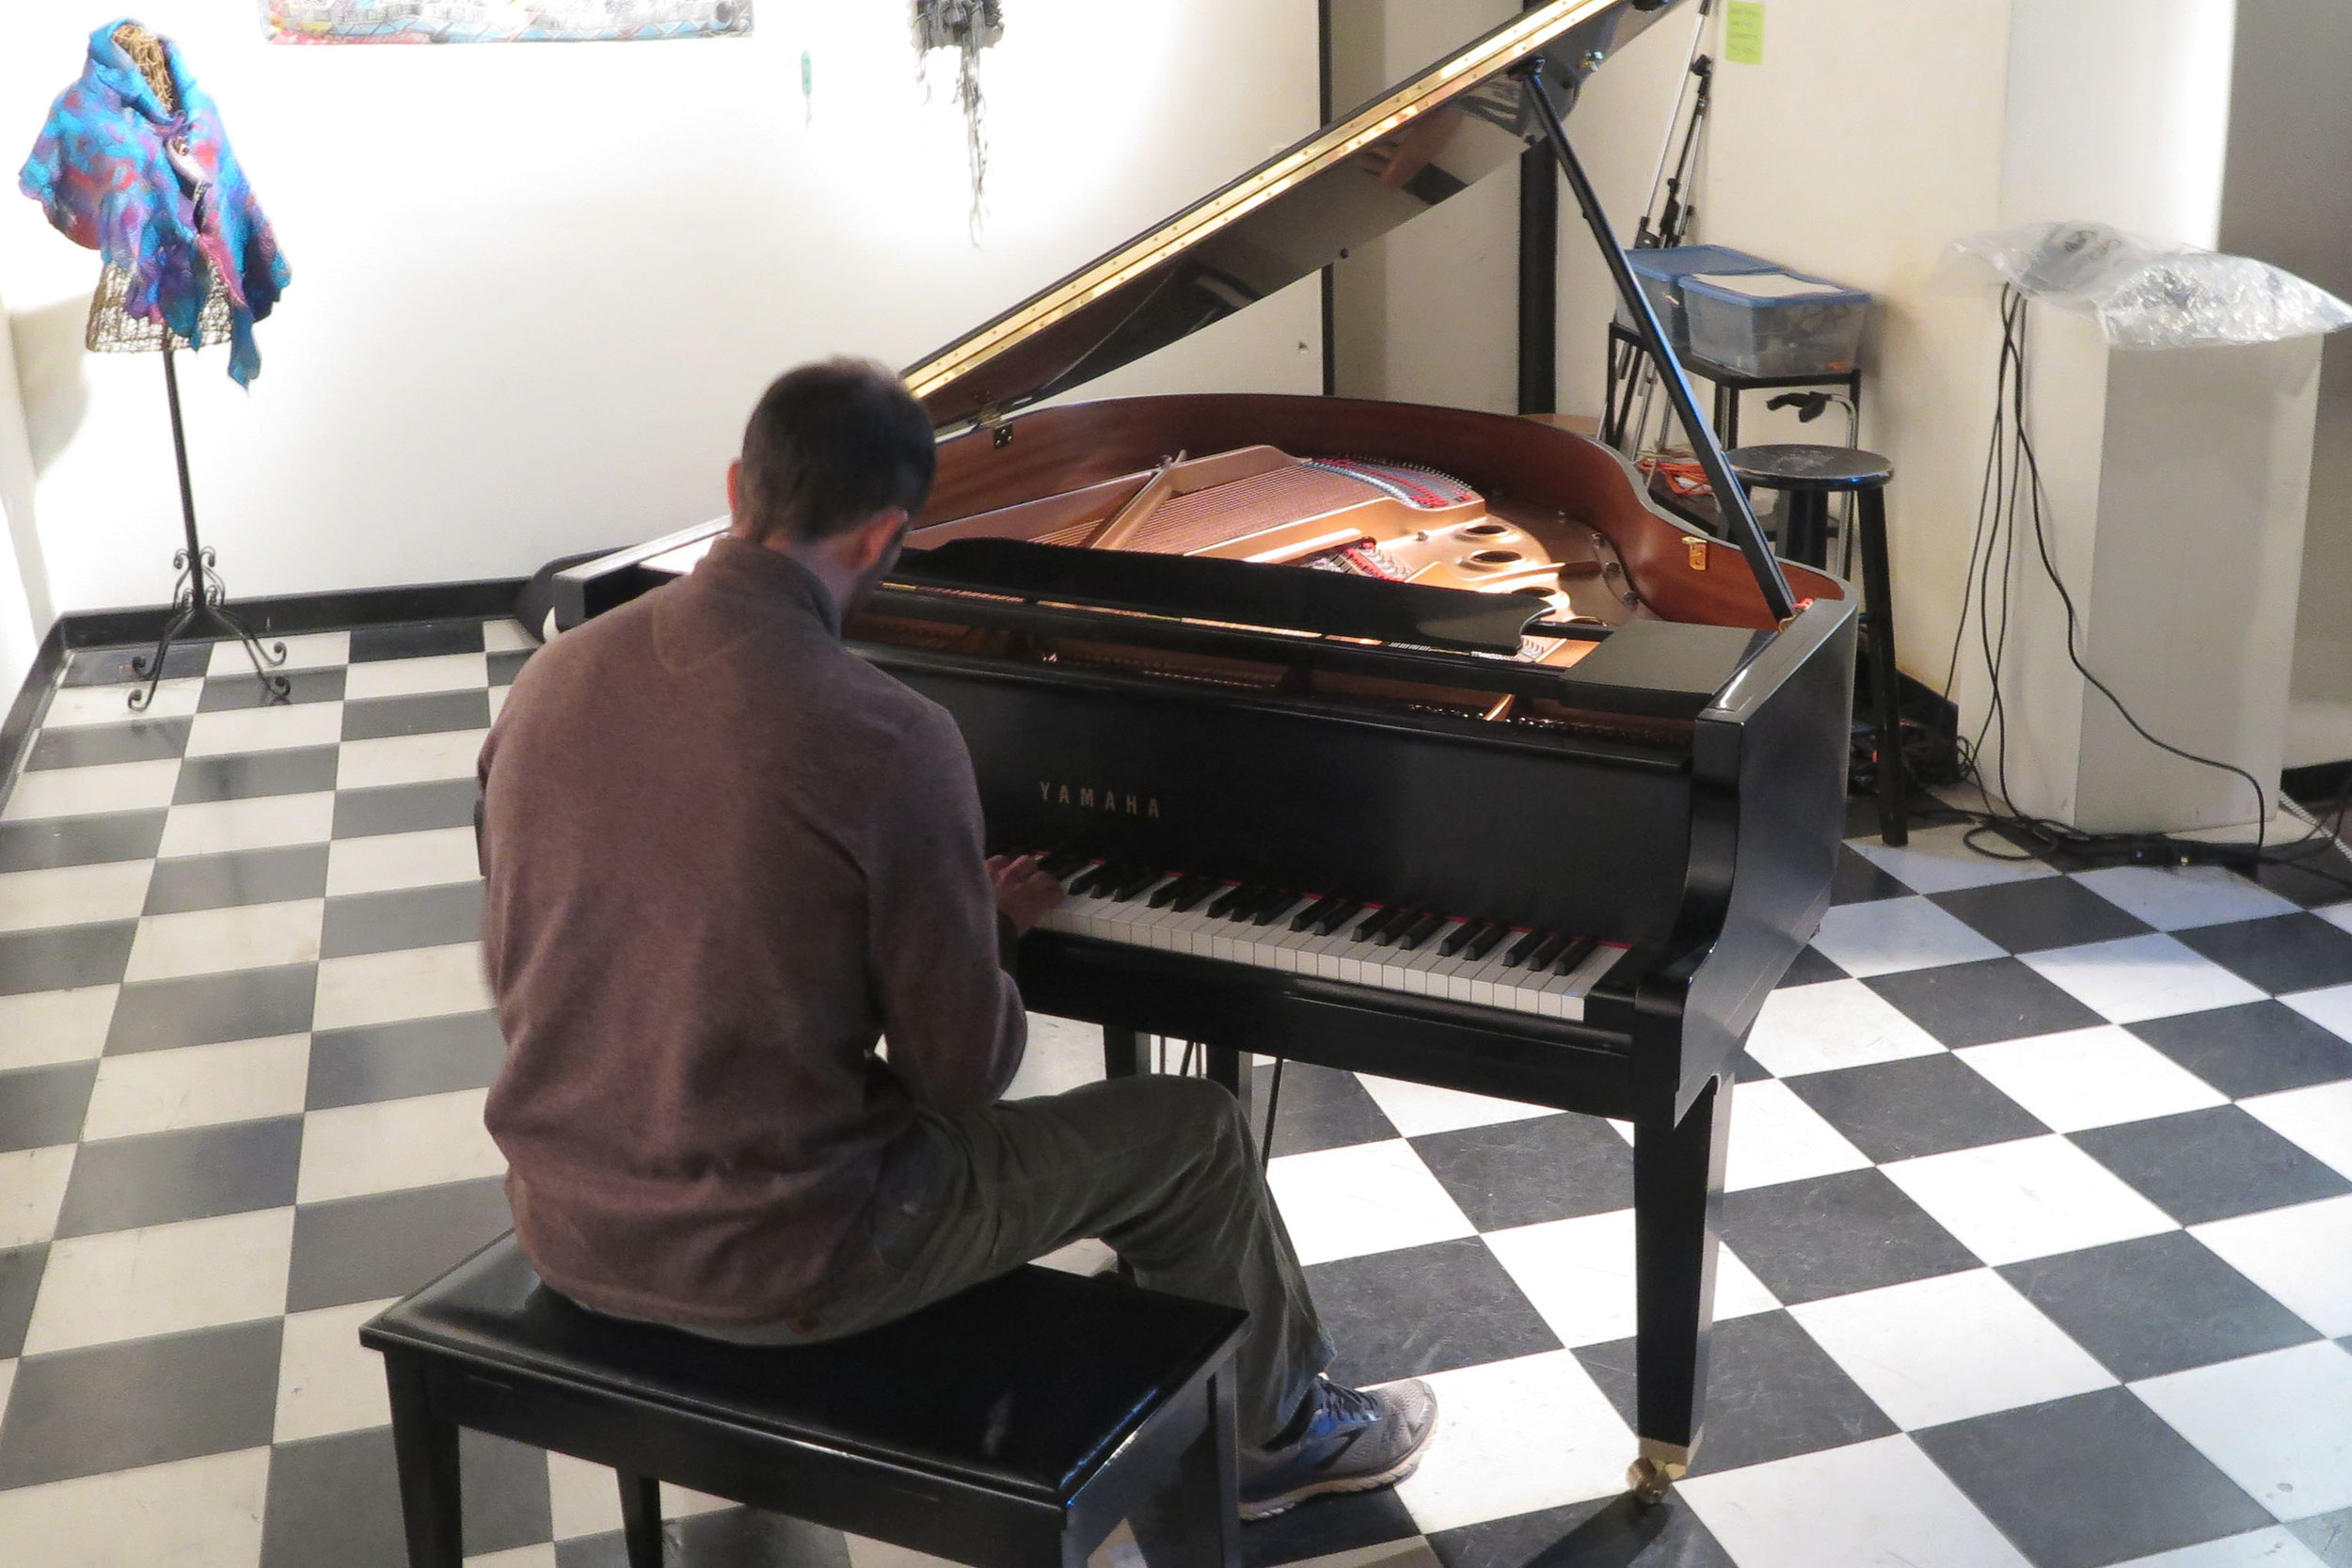 sam-tilton-on-piano.jpg